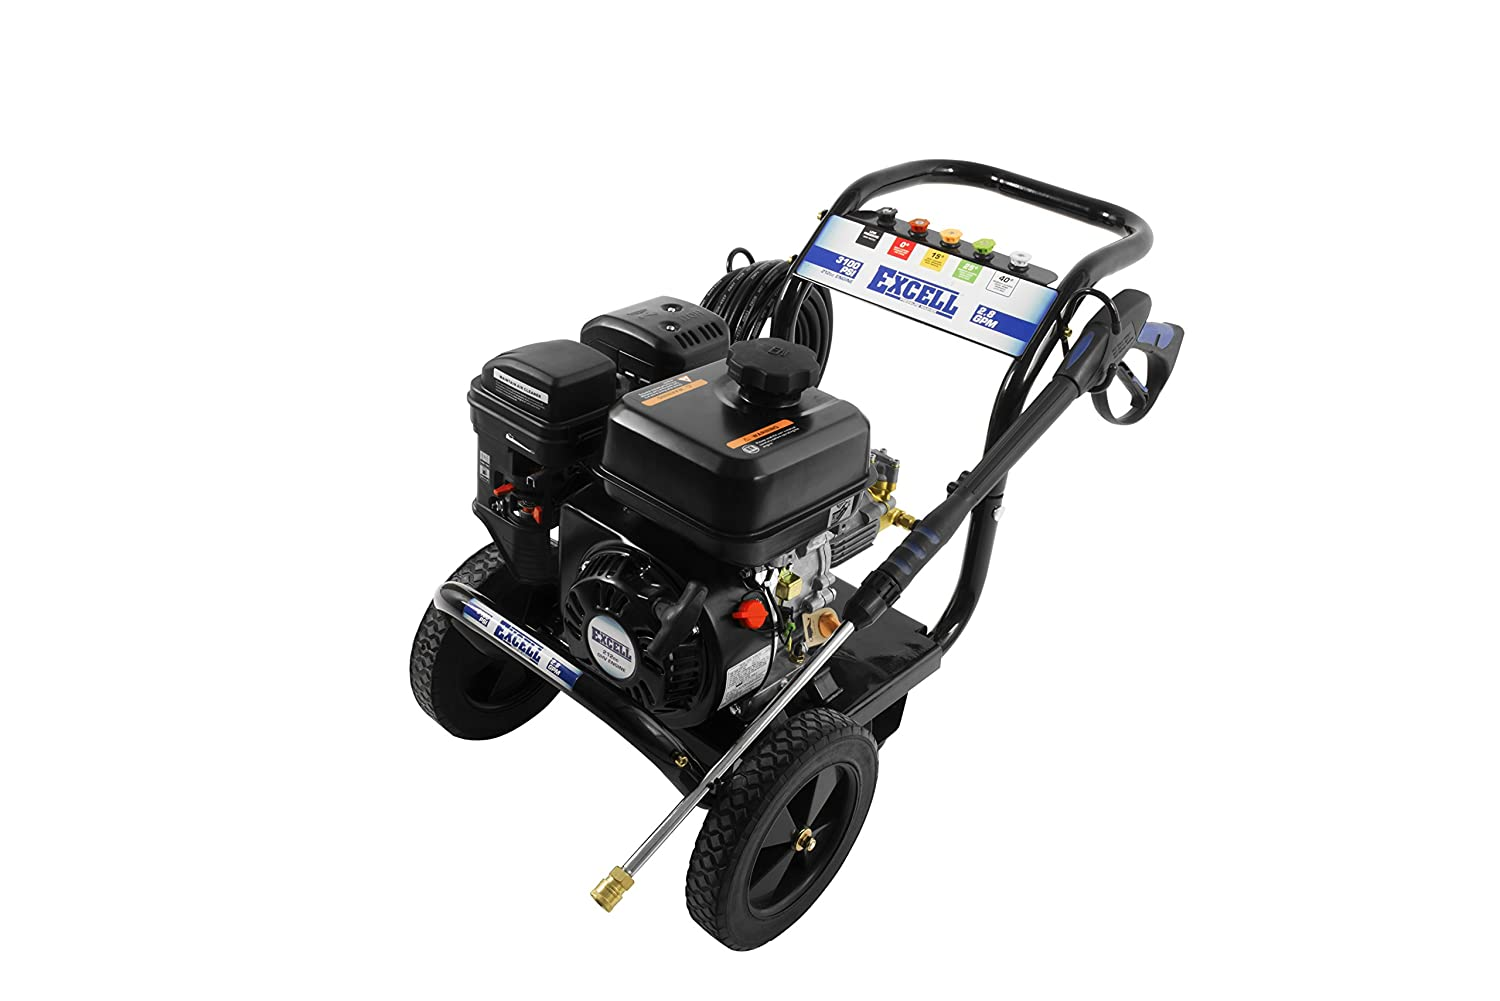 Amazon.com : excell EPW2123100 3100 PSI 2.8 GPM Cold Water 212CC Gas  Powered Pressure Washer : Garden & Outdoor